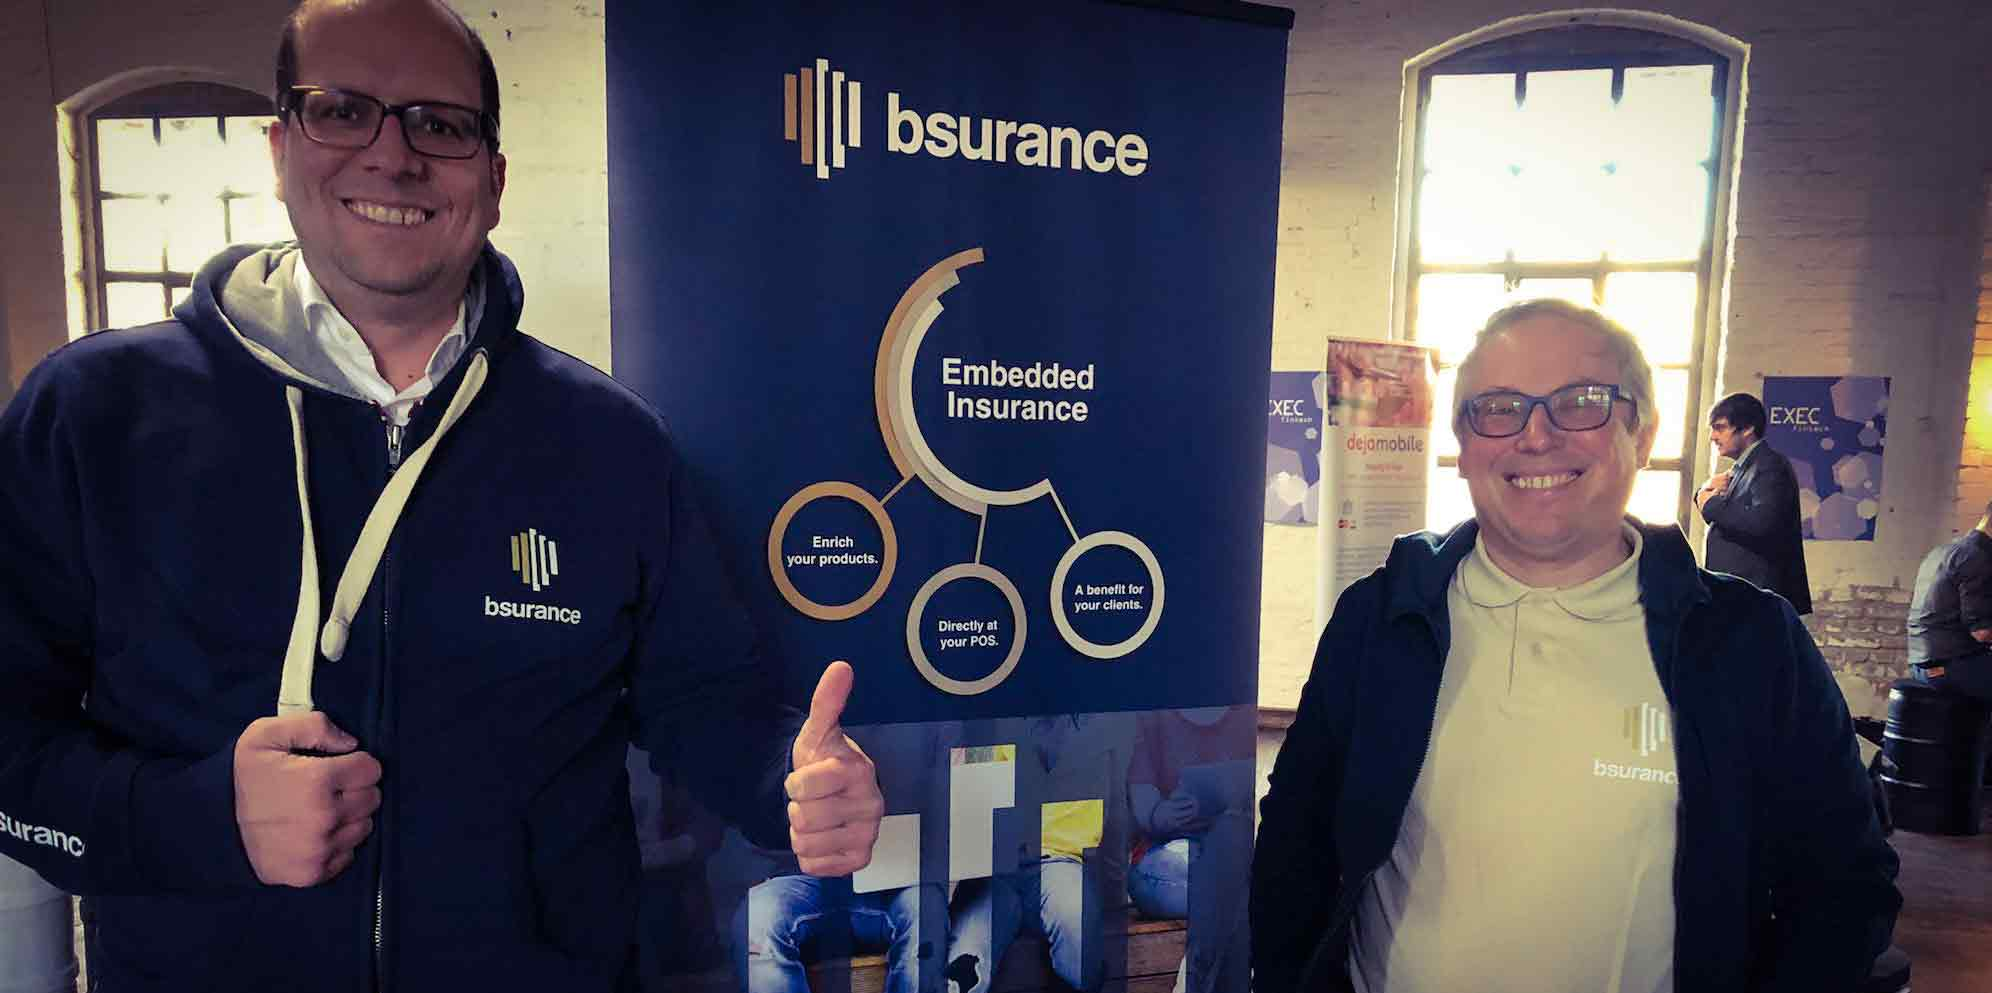 Team bsurance at the booth